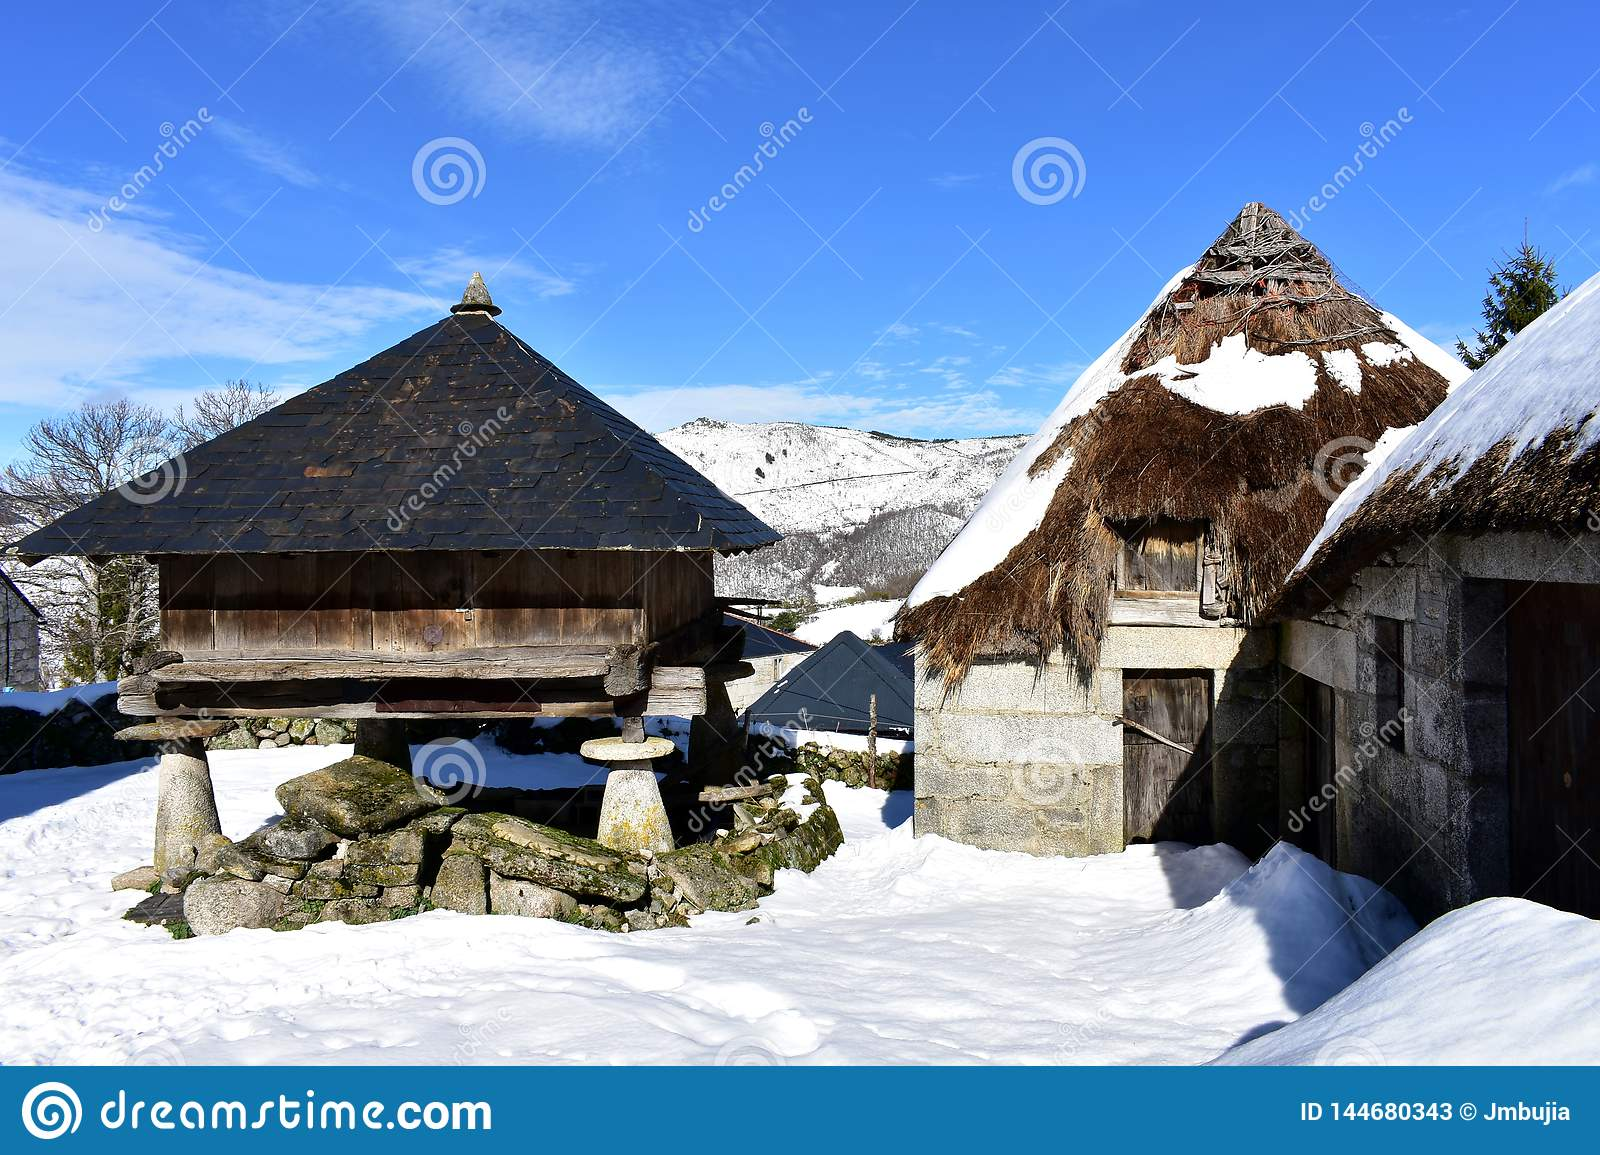 Snowy mountain village with ancient palloza houses made with stone and straw and galician granary horreo. Piornedo, Lugo, Spain.